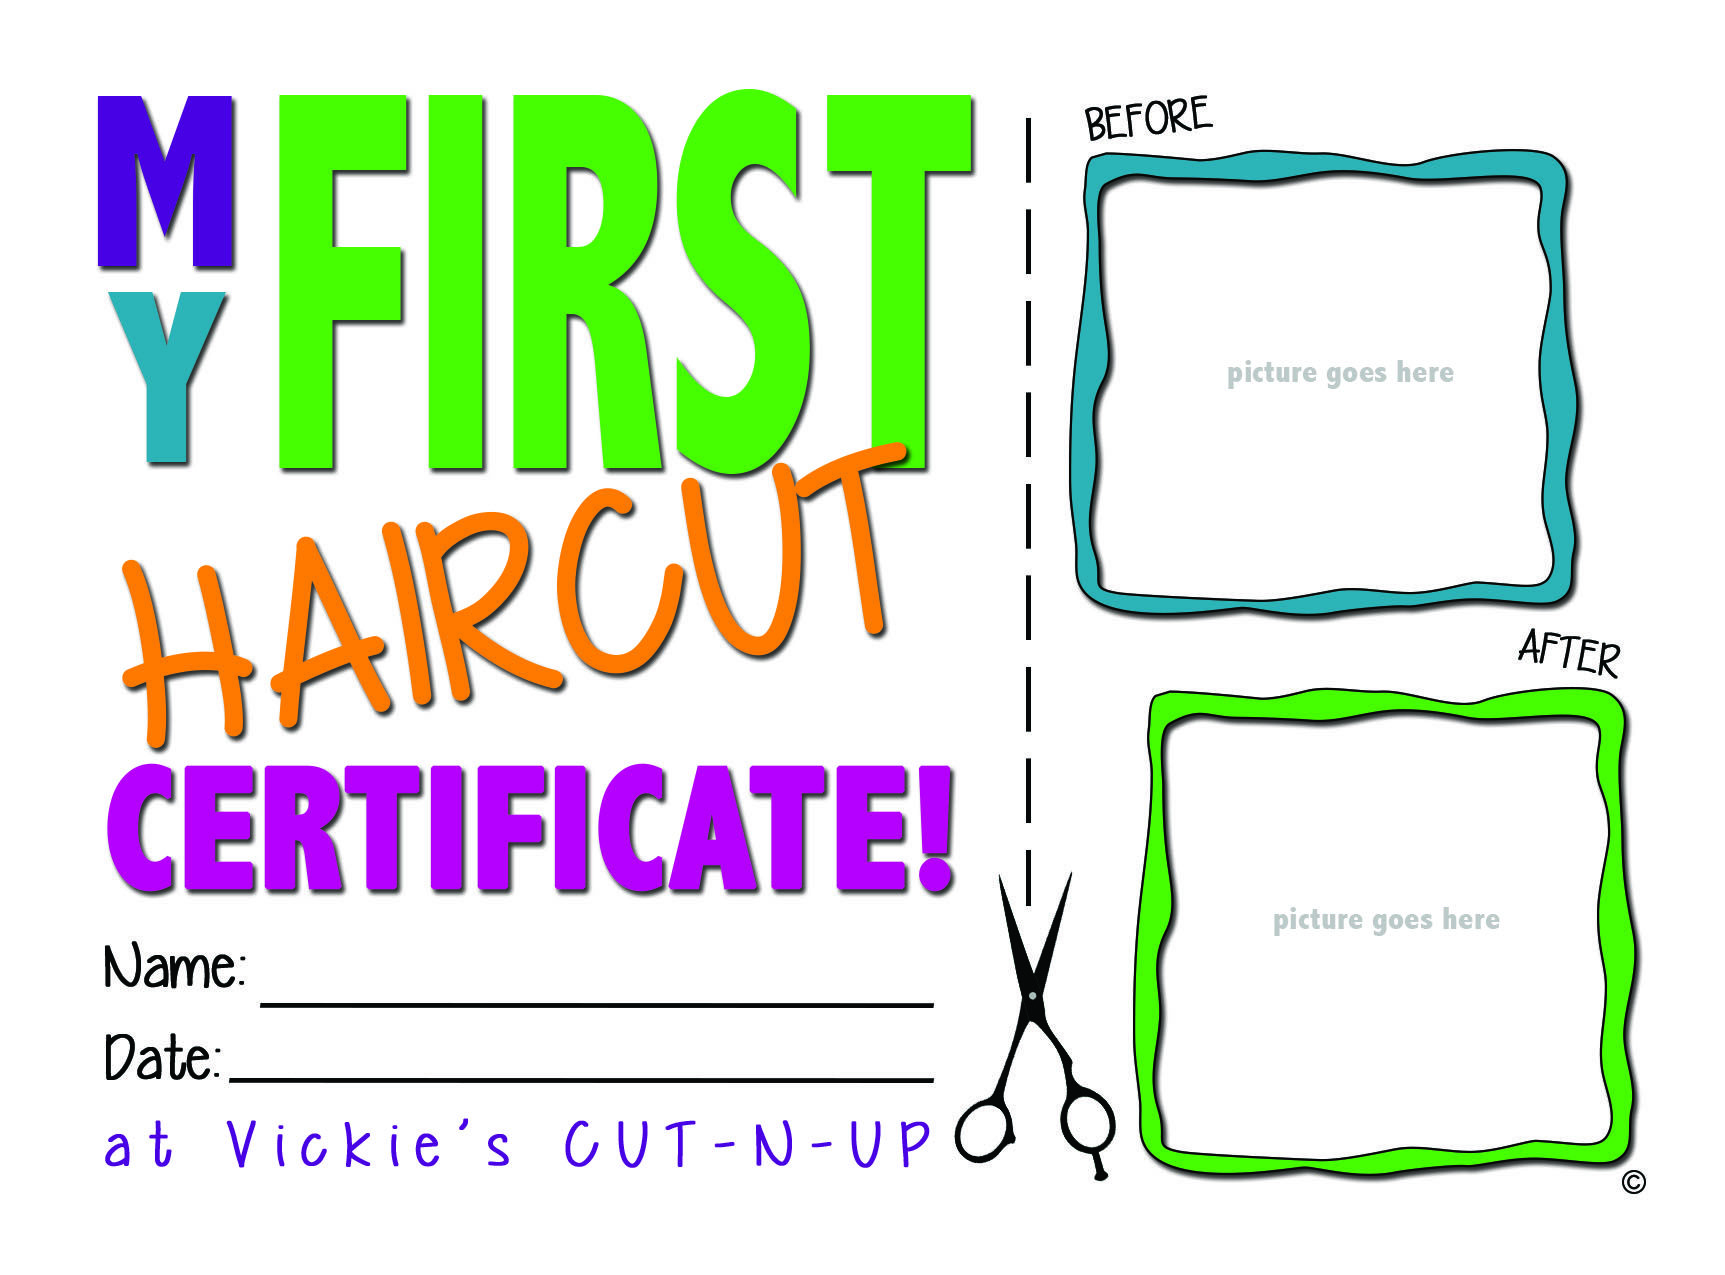 Babys first haircut certificate 25 fuhrmannmedia babys first haircut certificate 25 fuhrmannmedia babysfirsthaircut facebook yelopaper Gallery